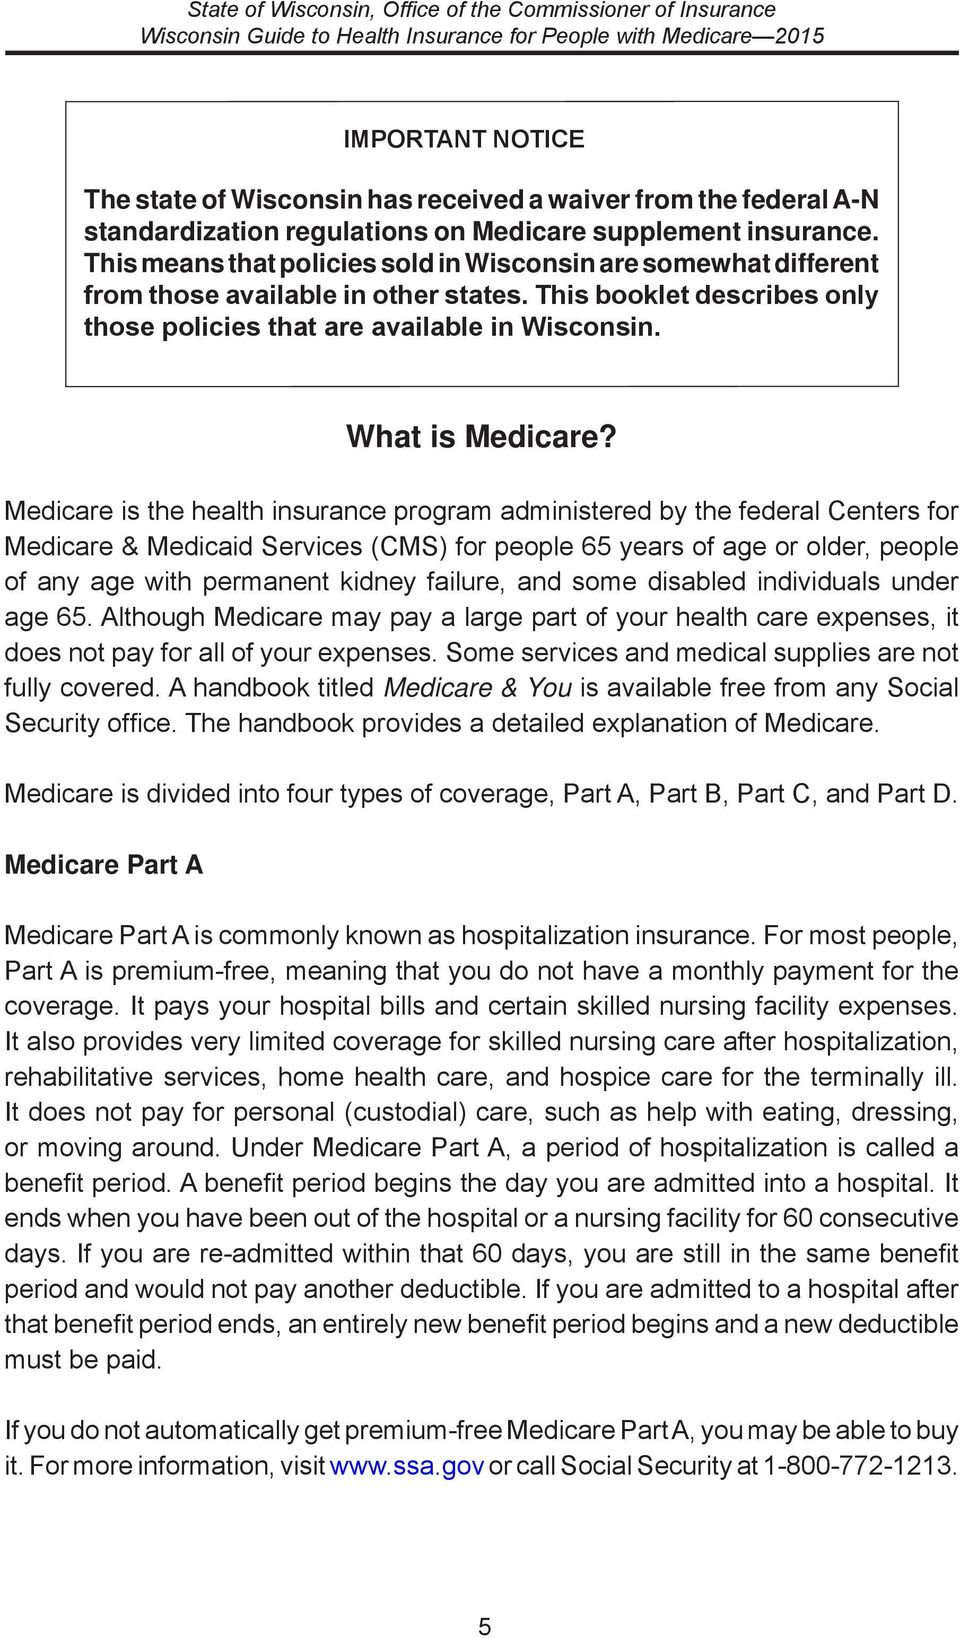 Medicare is the health insurance program administered by the federal Centers for Medicare & Medicaid Services (CMS) for people 65 years of age or older, people of any age with permanent kidney